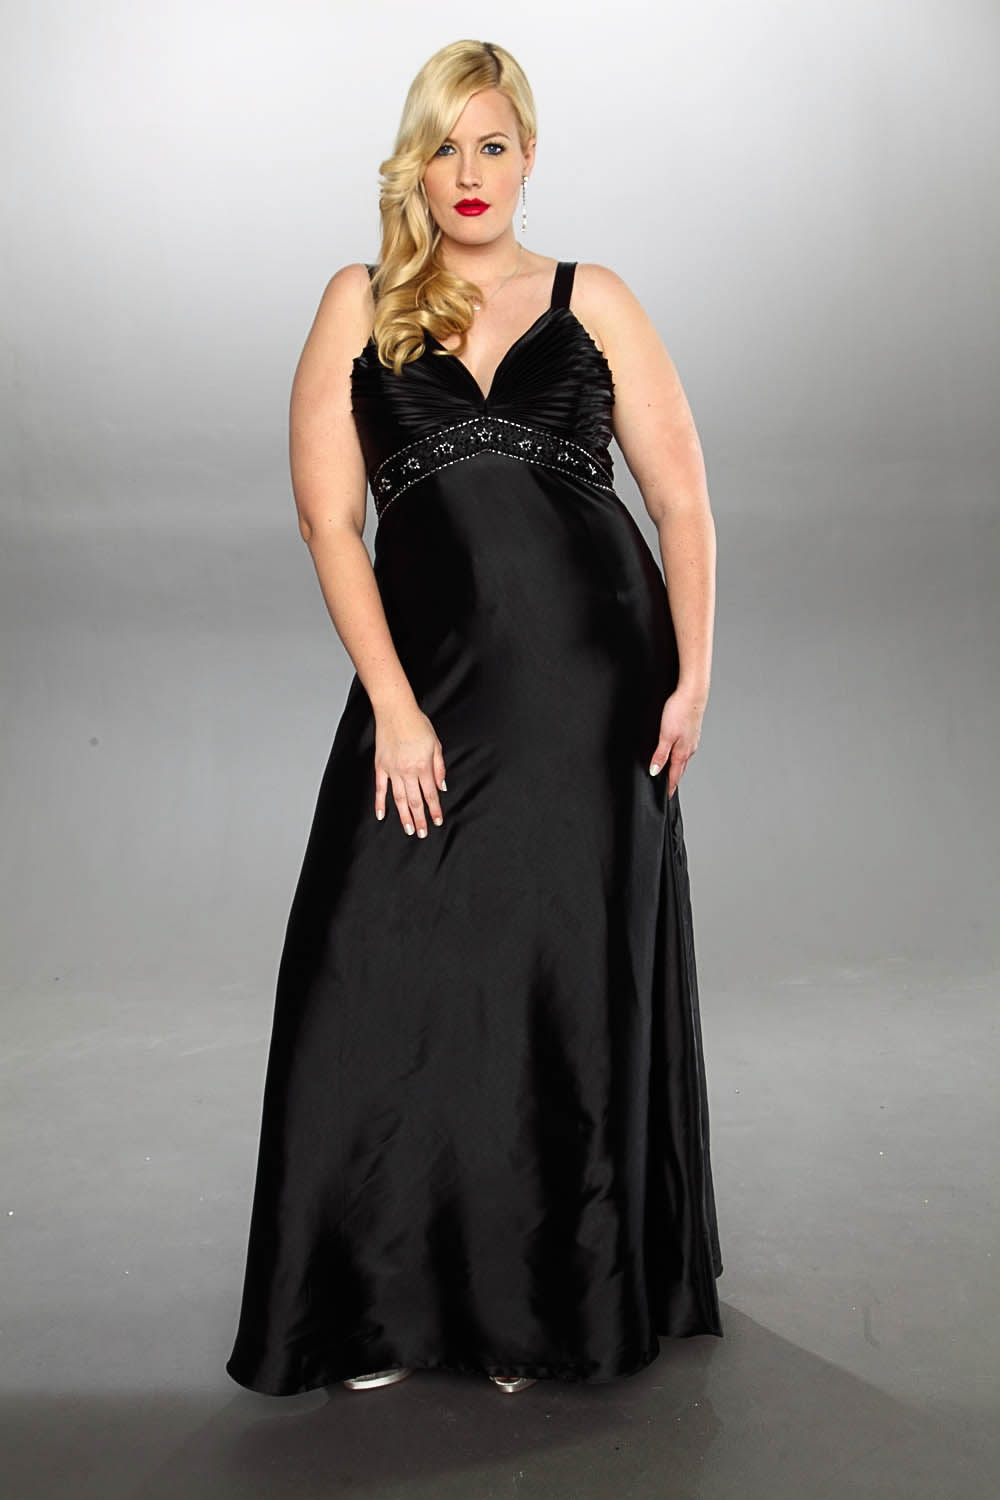 Dillards Plus Size Designer Women's Clothing Plus Size Wedding Dresses